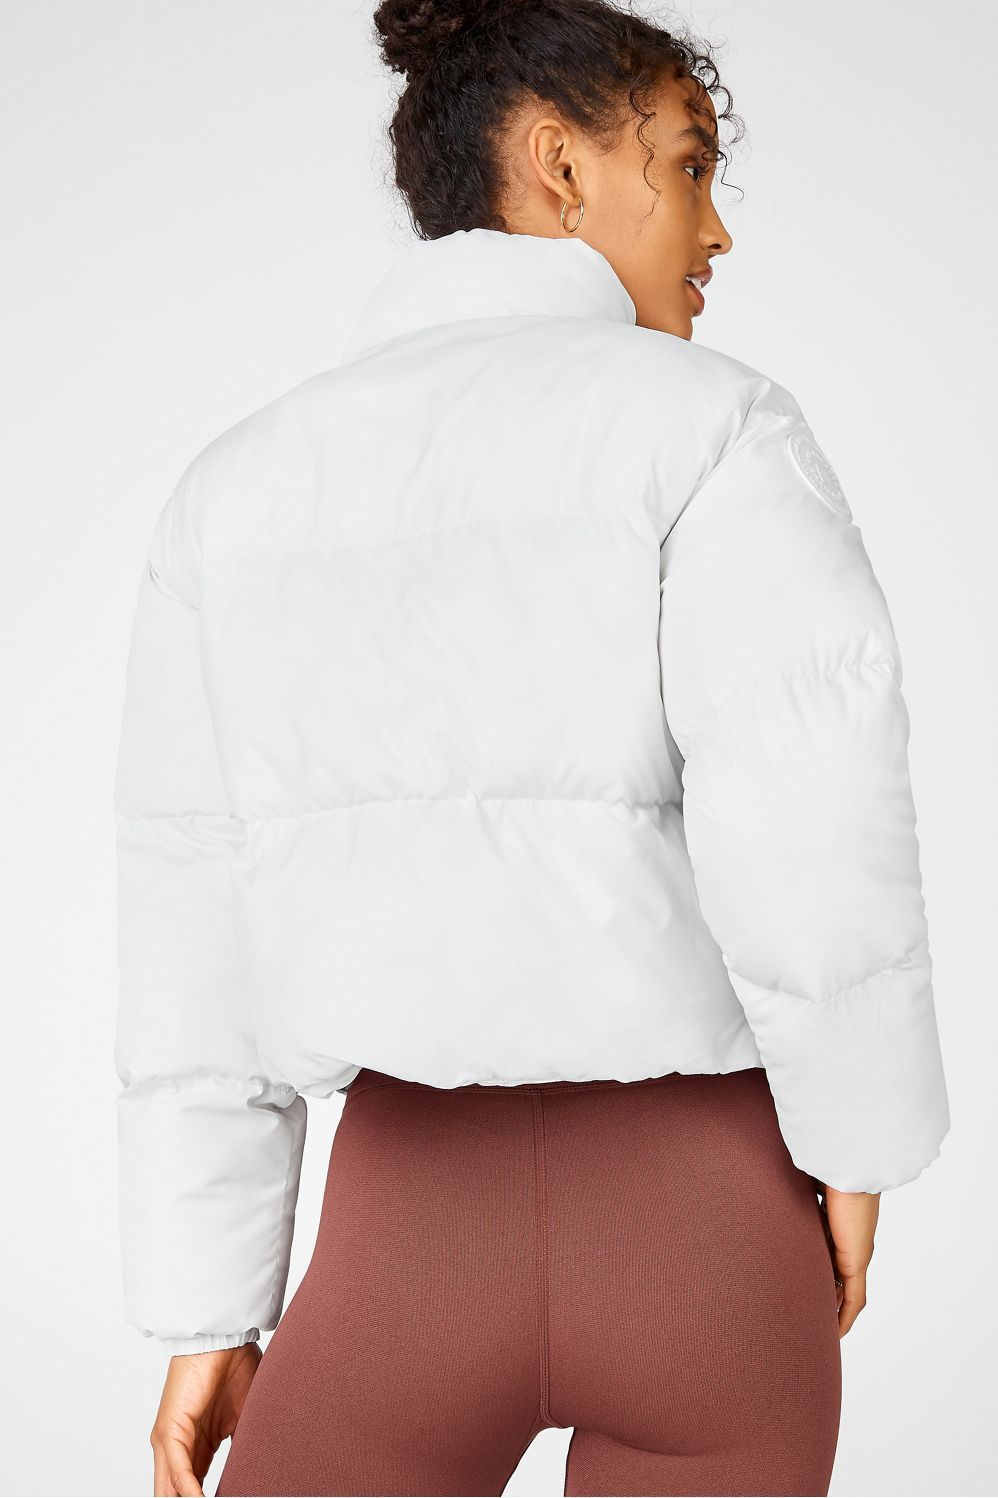 Wander Cropped Puffer In 2021 Cropped Puffer Jacket Outfit Crop Top Outfits Summer Puffer Jacket Outfit [ 1498 x 998 Pixel ]